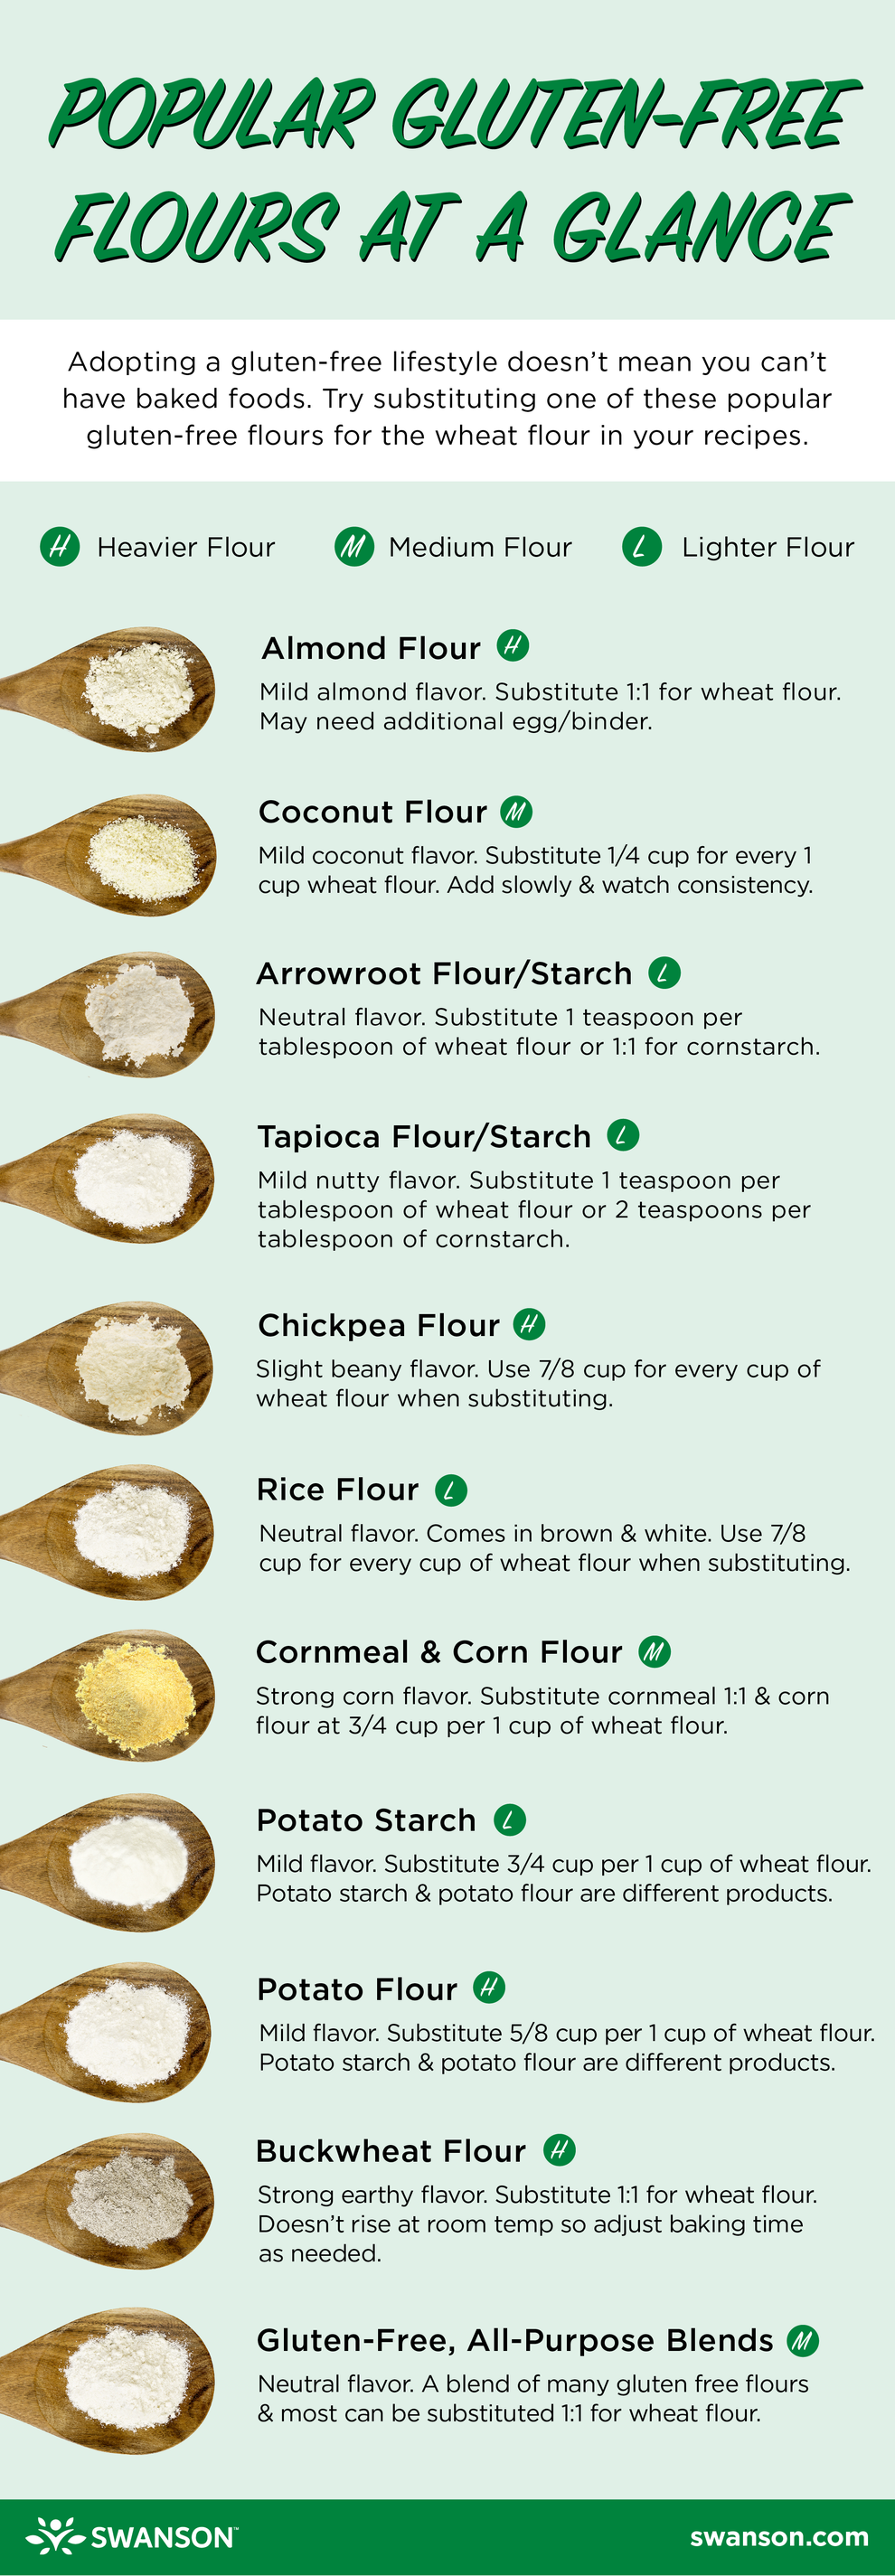 15 Food And Cooking Cheat Sheets That Are Especially Useful Right Now